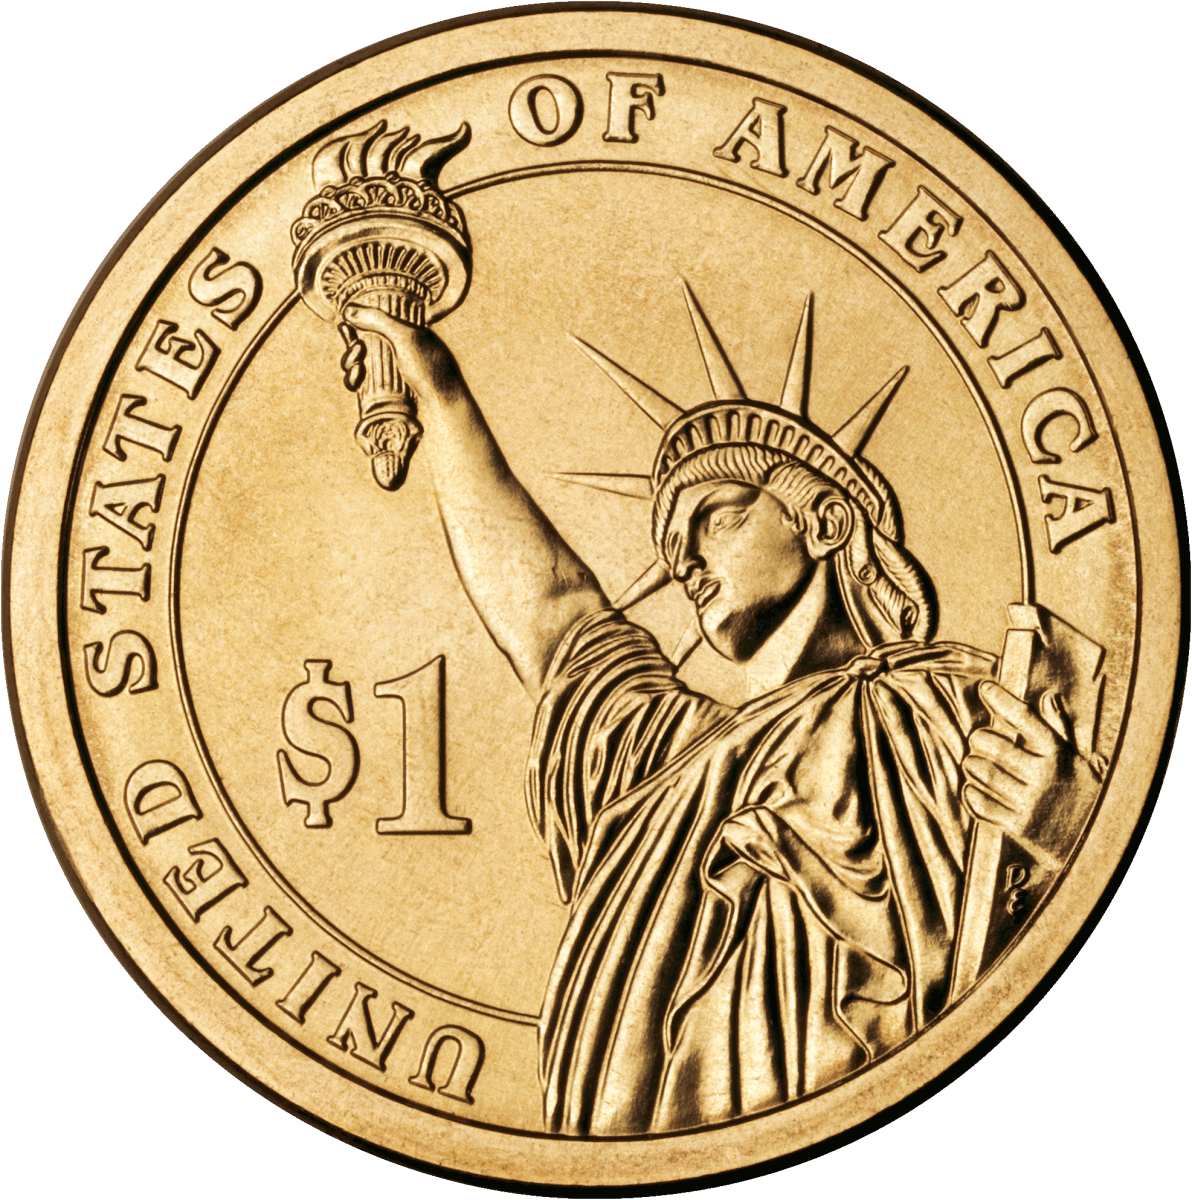 United States Presidential Liberty coin